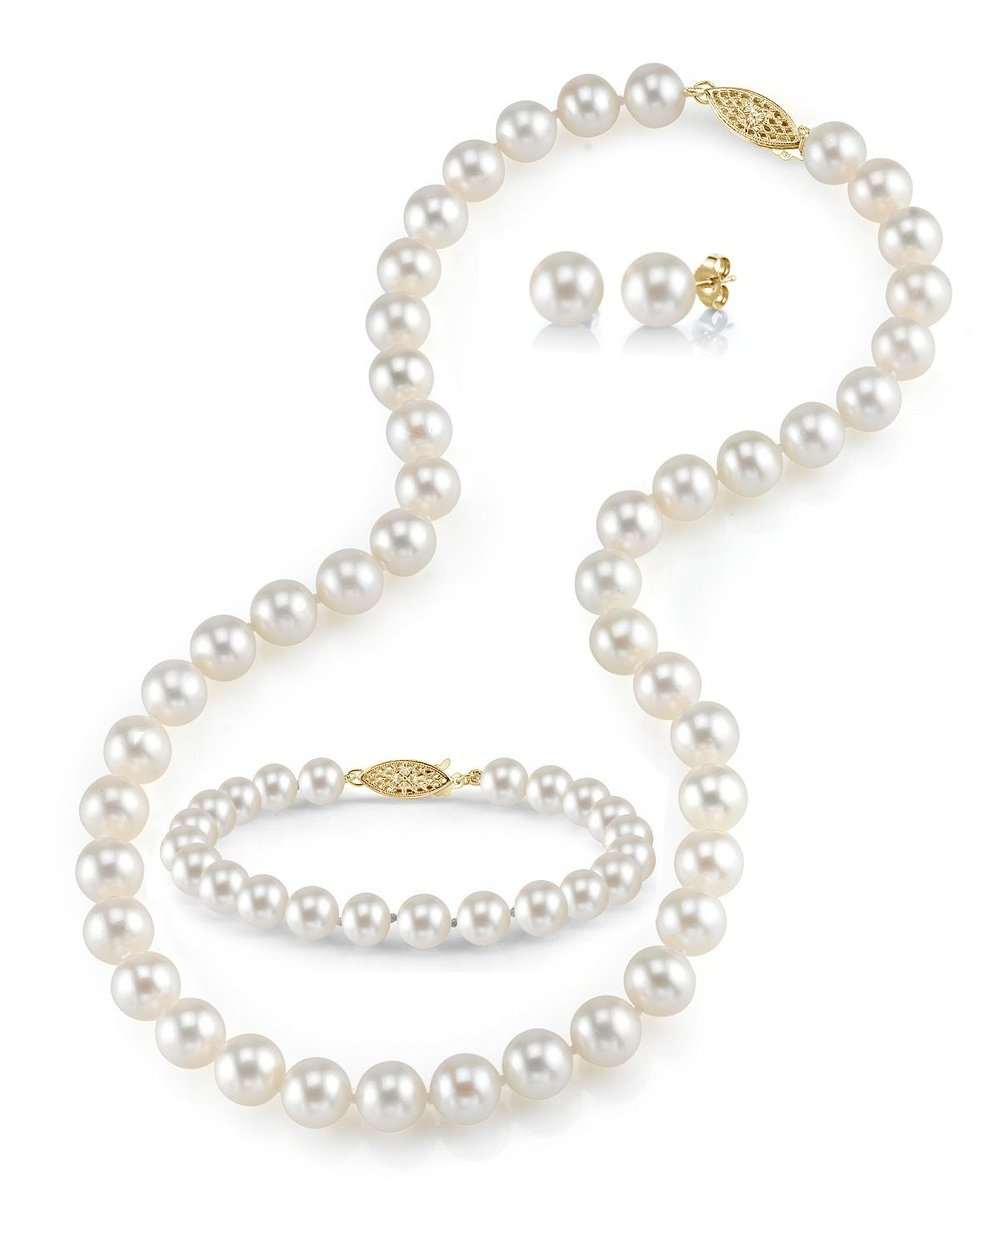 THE PEARL SOURCE 14K Gold 8-9mm Round White Freshwater Cultured Pearl Necklace, Bracelet & Earrings Set in 18'' Princess Length for Women